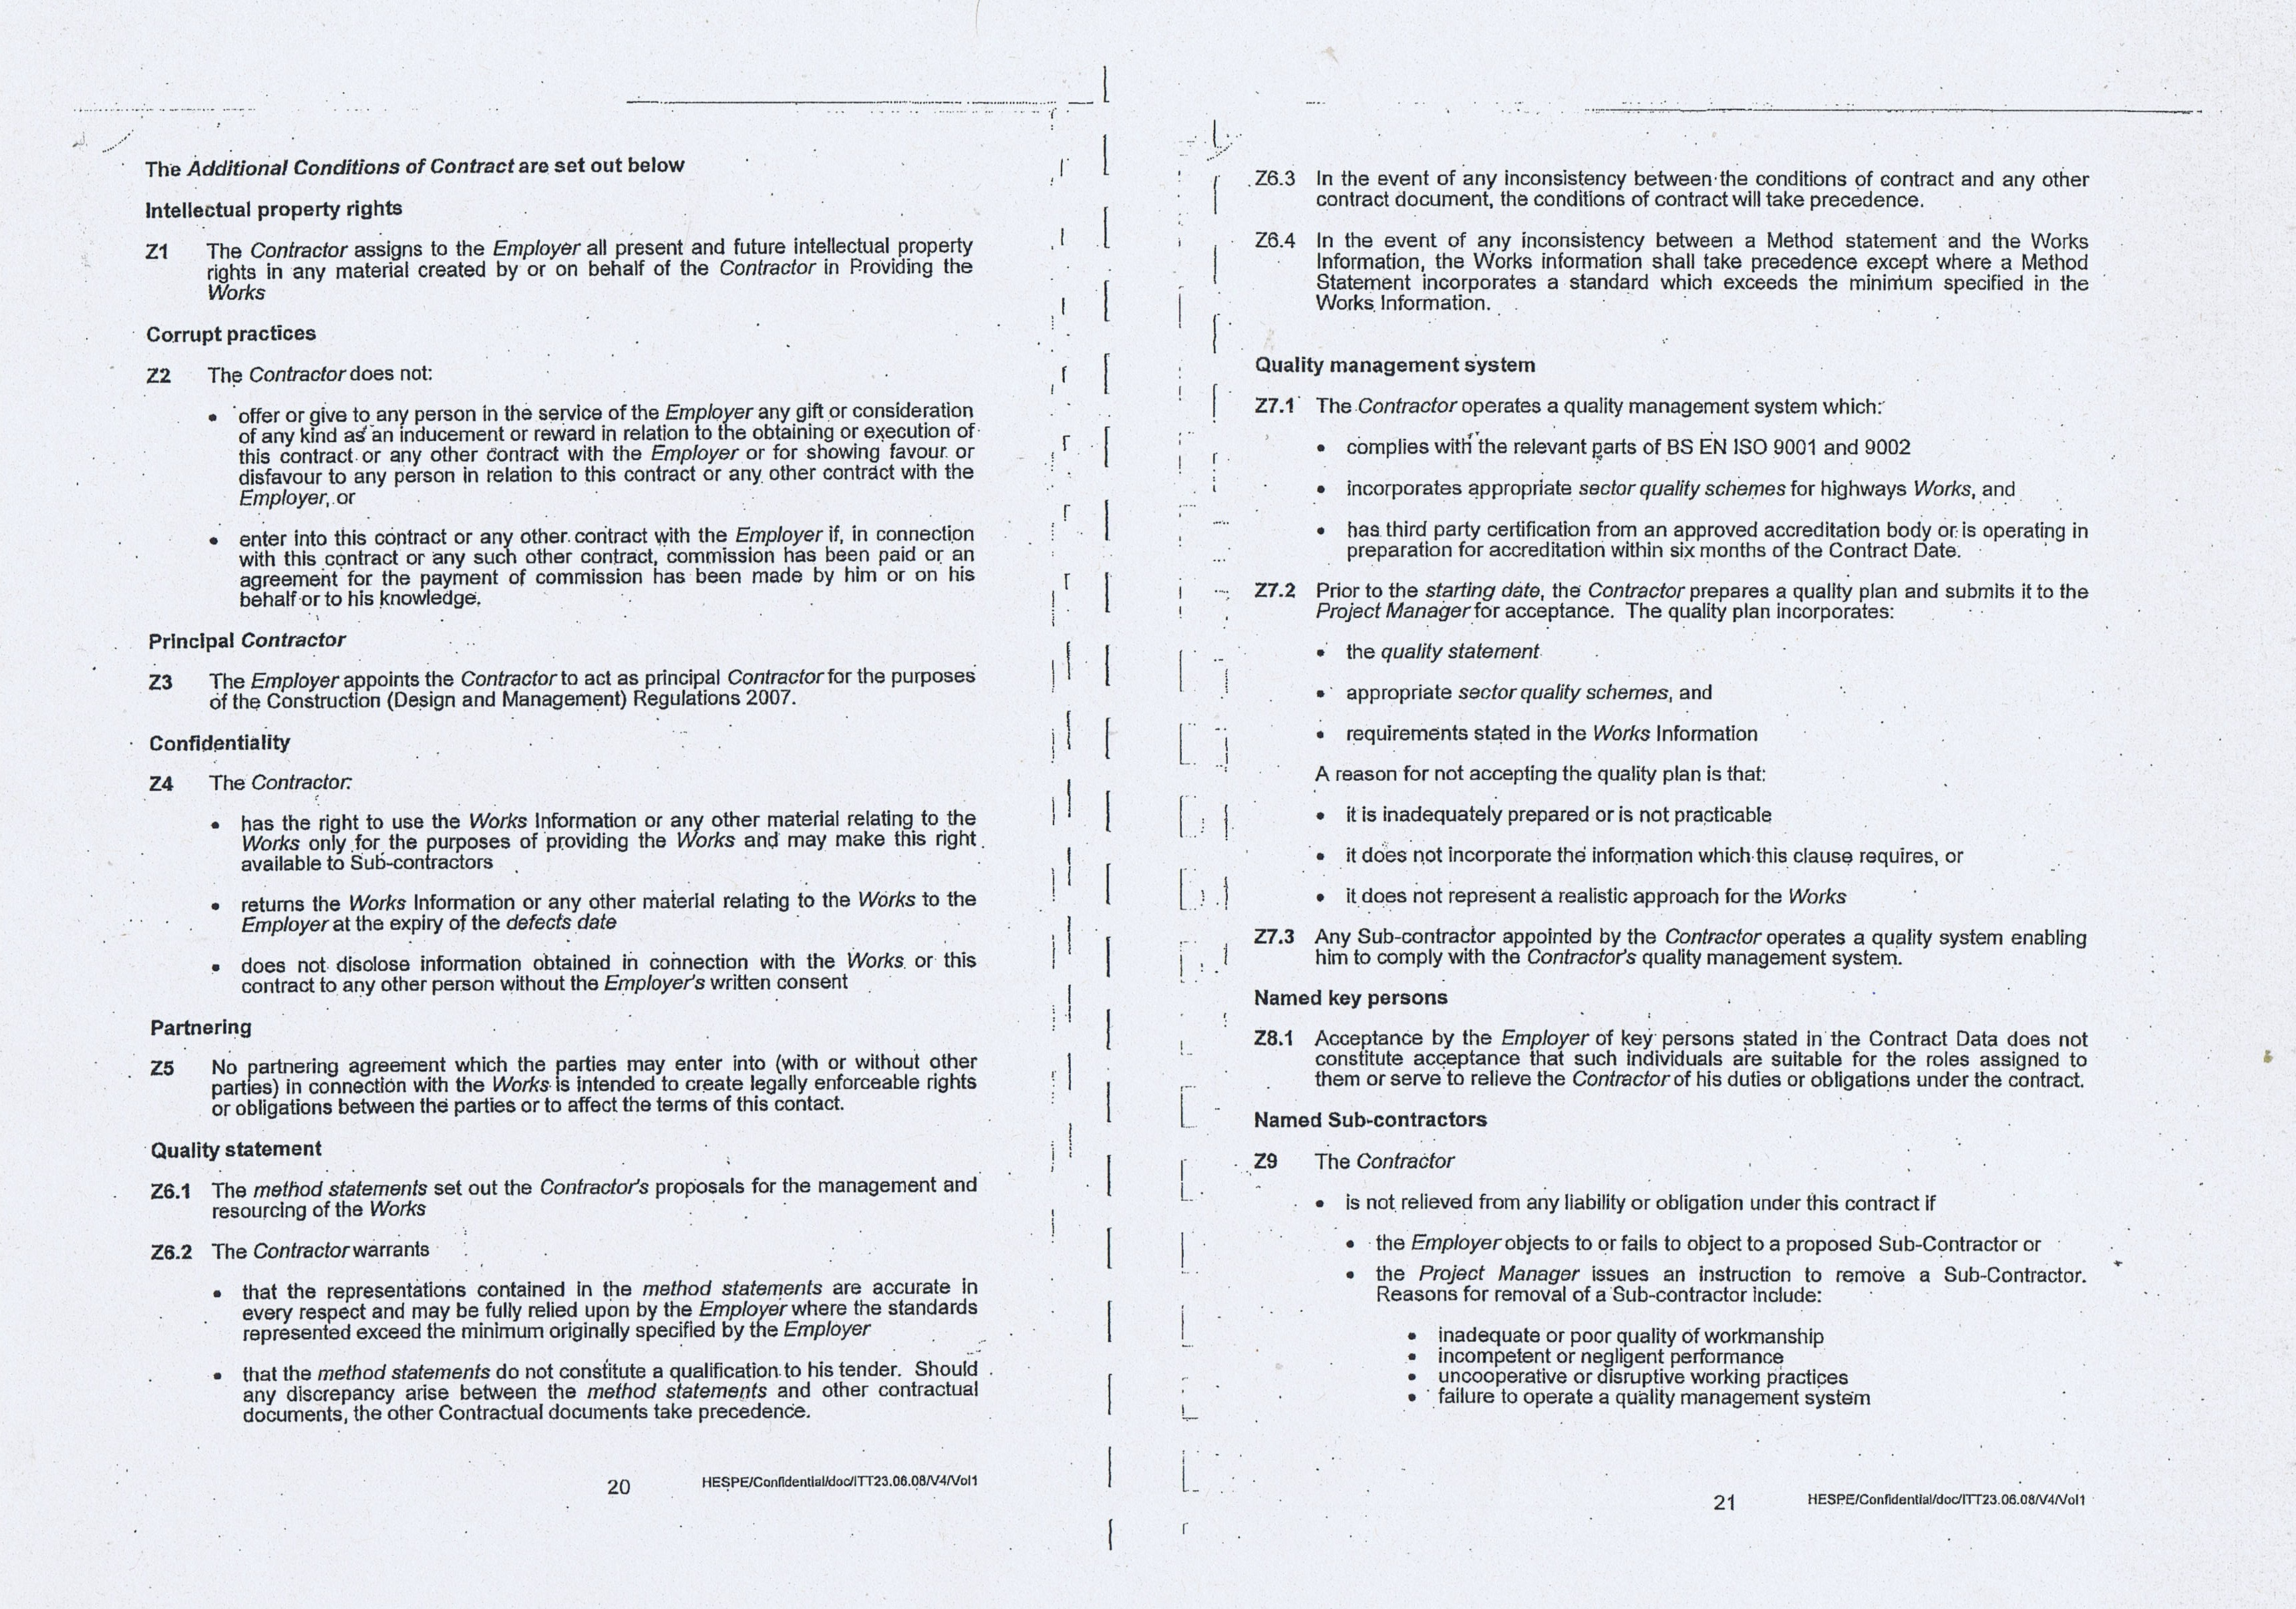 Wirral Council Colas Highways and Engineering Services Contract Page 10